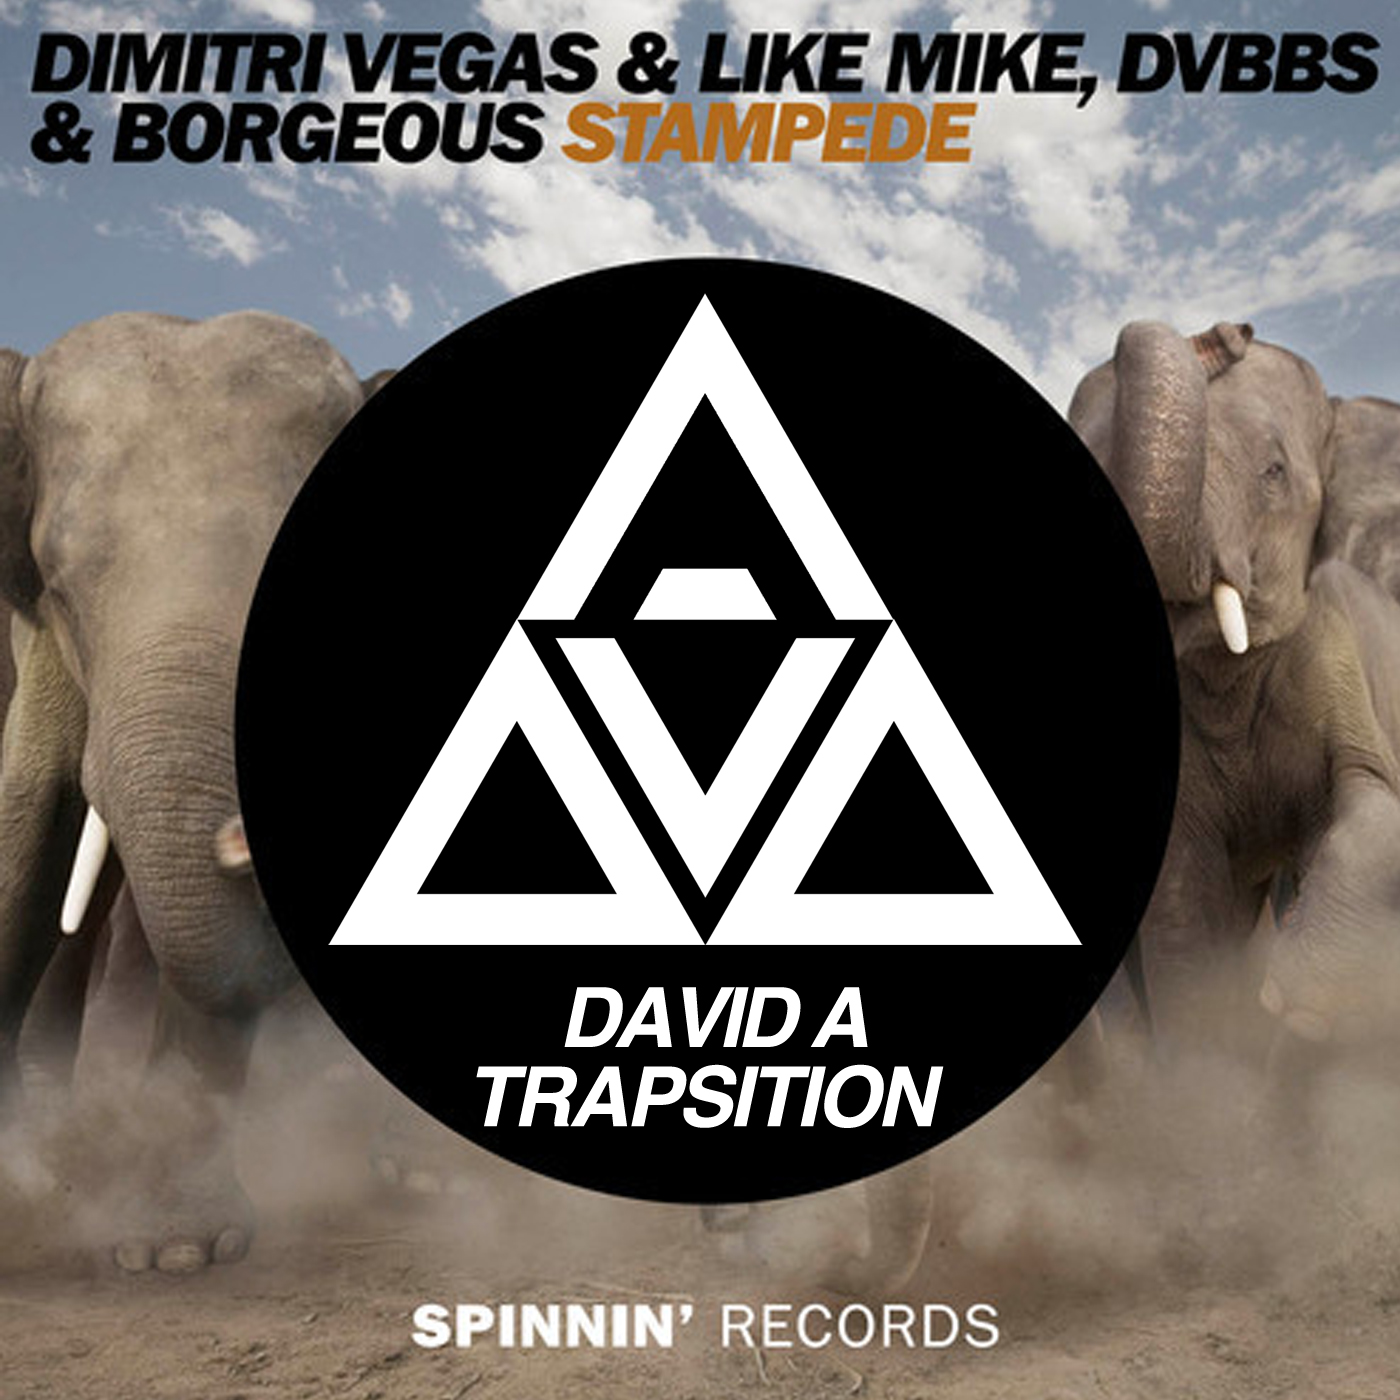 Stampede (David A Trapsition) - Dimitri Vegas and Like Mike vs DVBBS and Borgeous